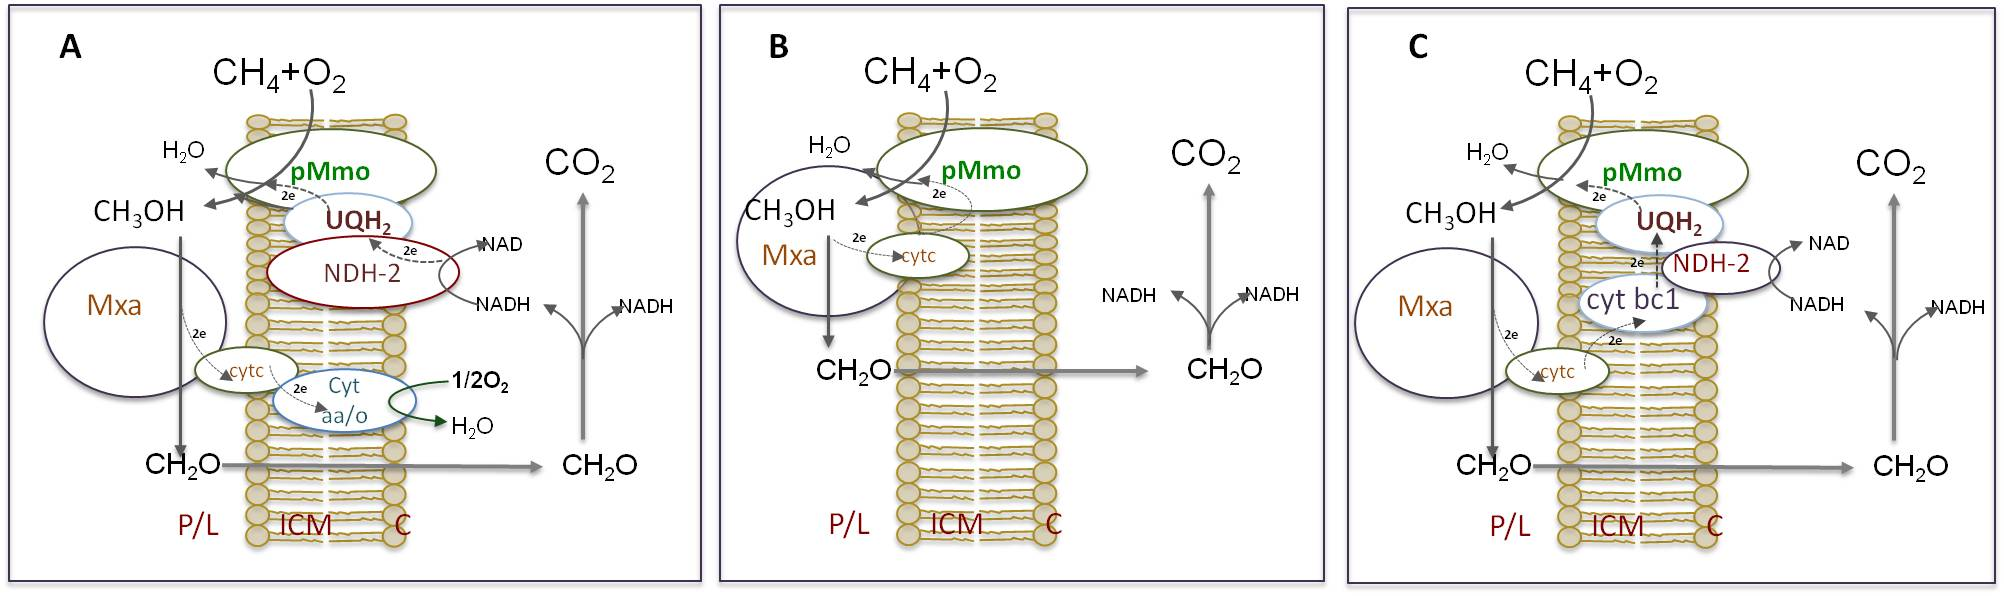 Possible modes of methane oxidation